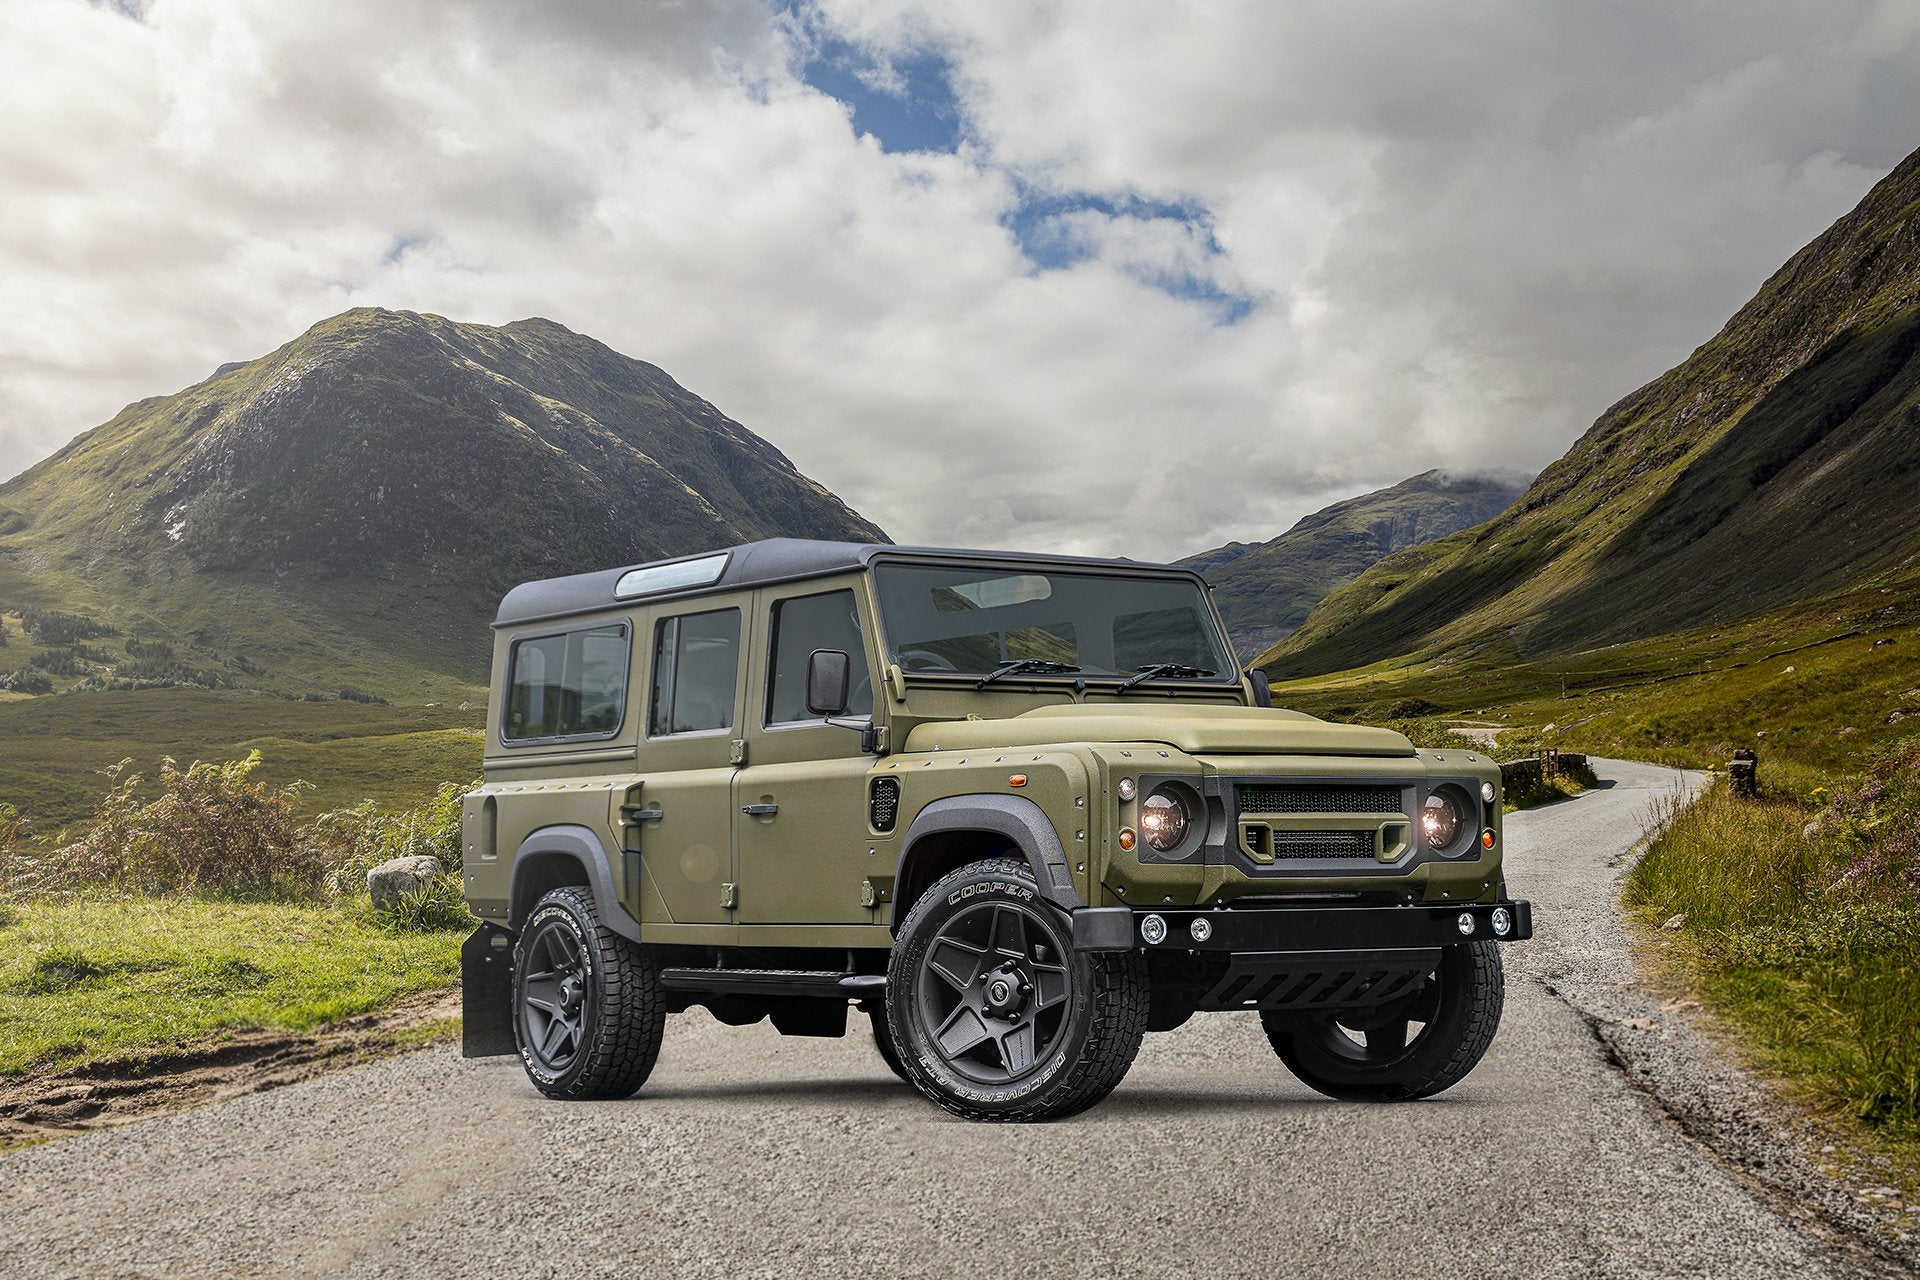 Land Rover Defender 110 (1991-2016) Wide Track Exterior Body Styling Pack Image 4823